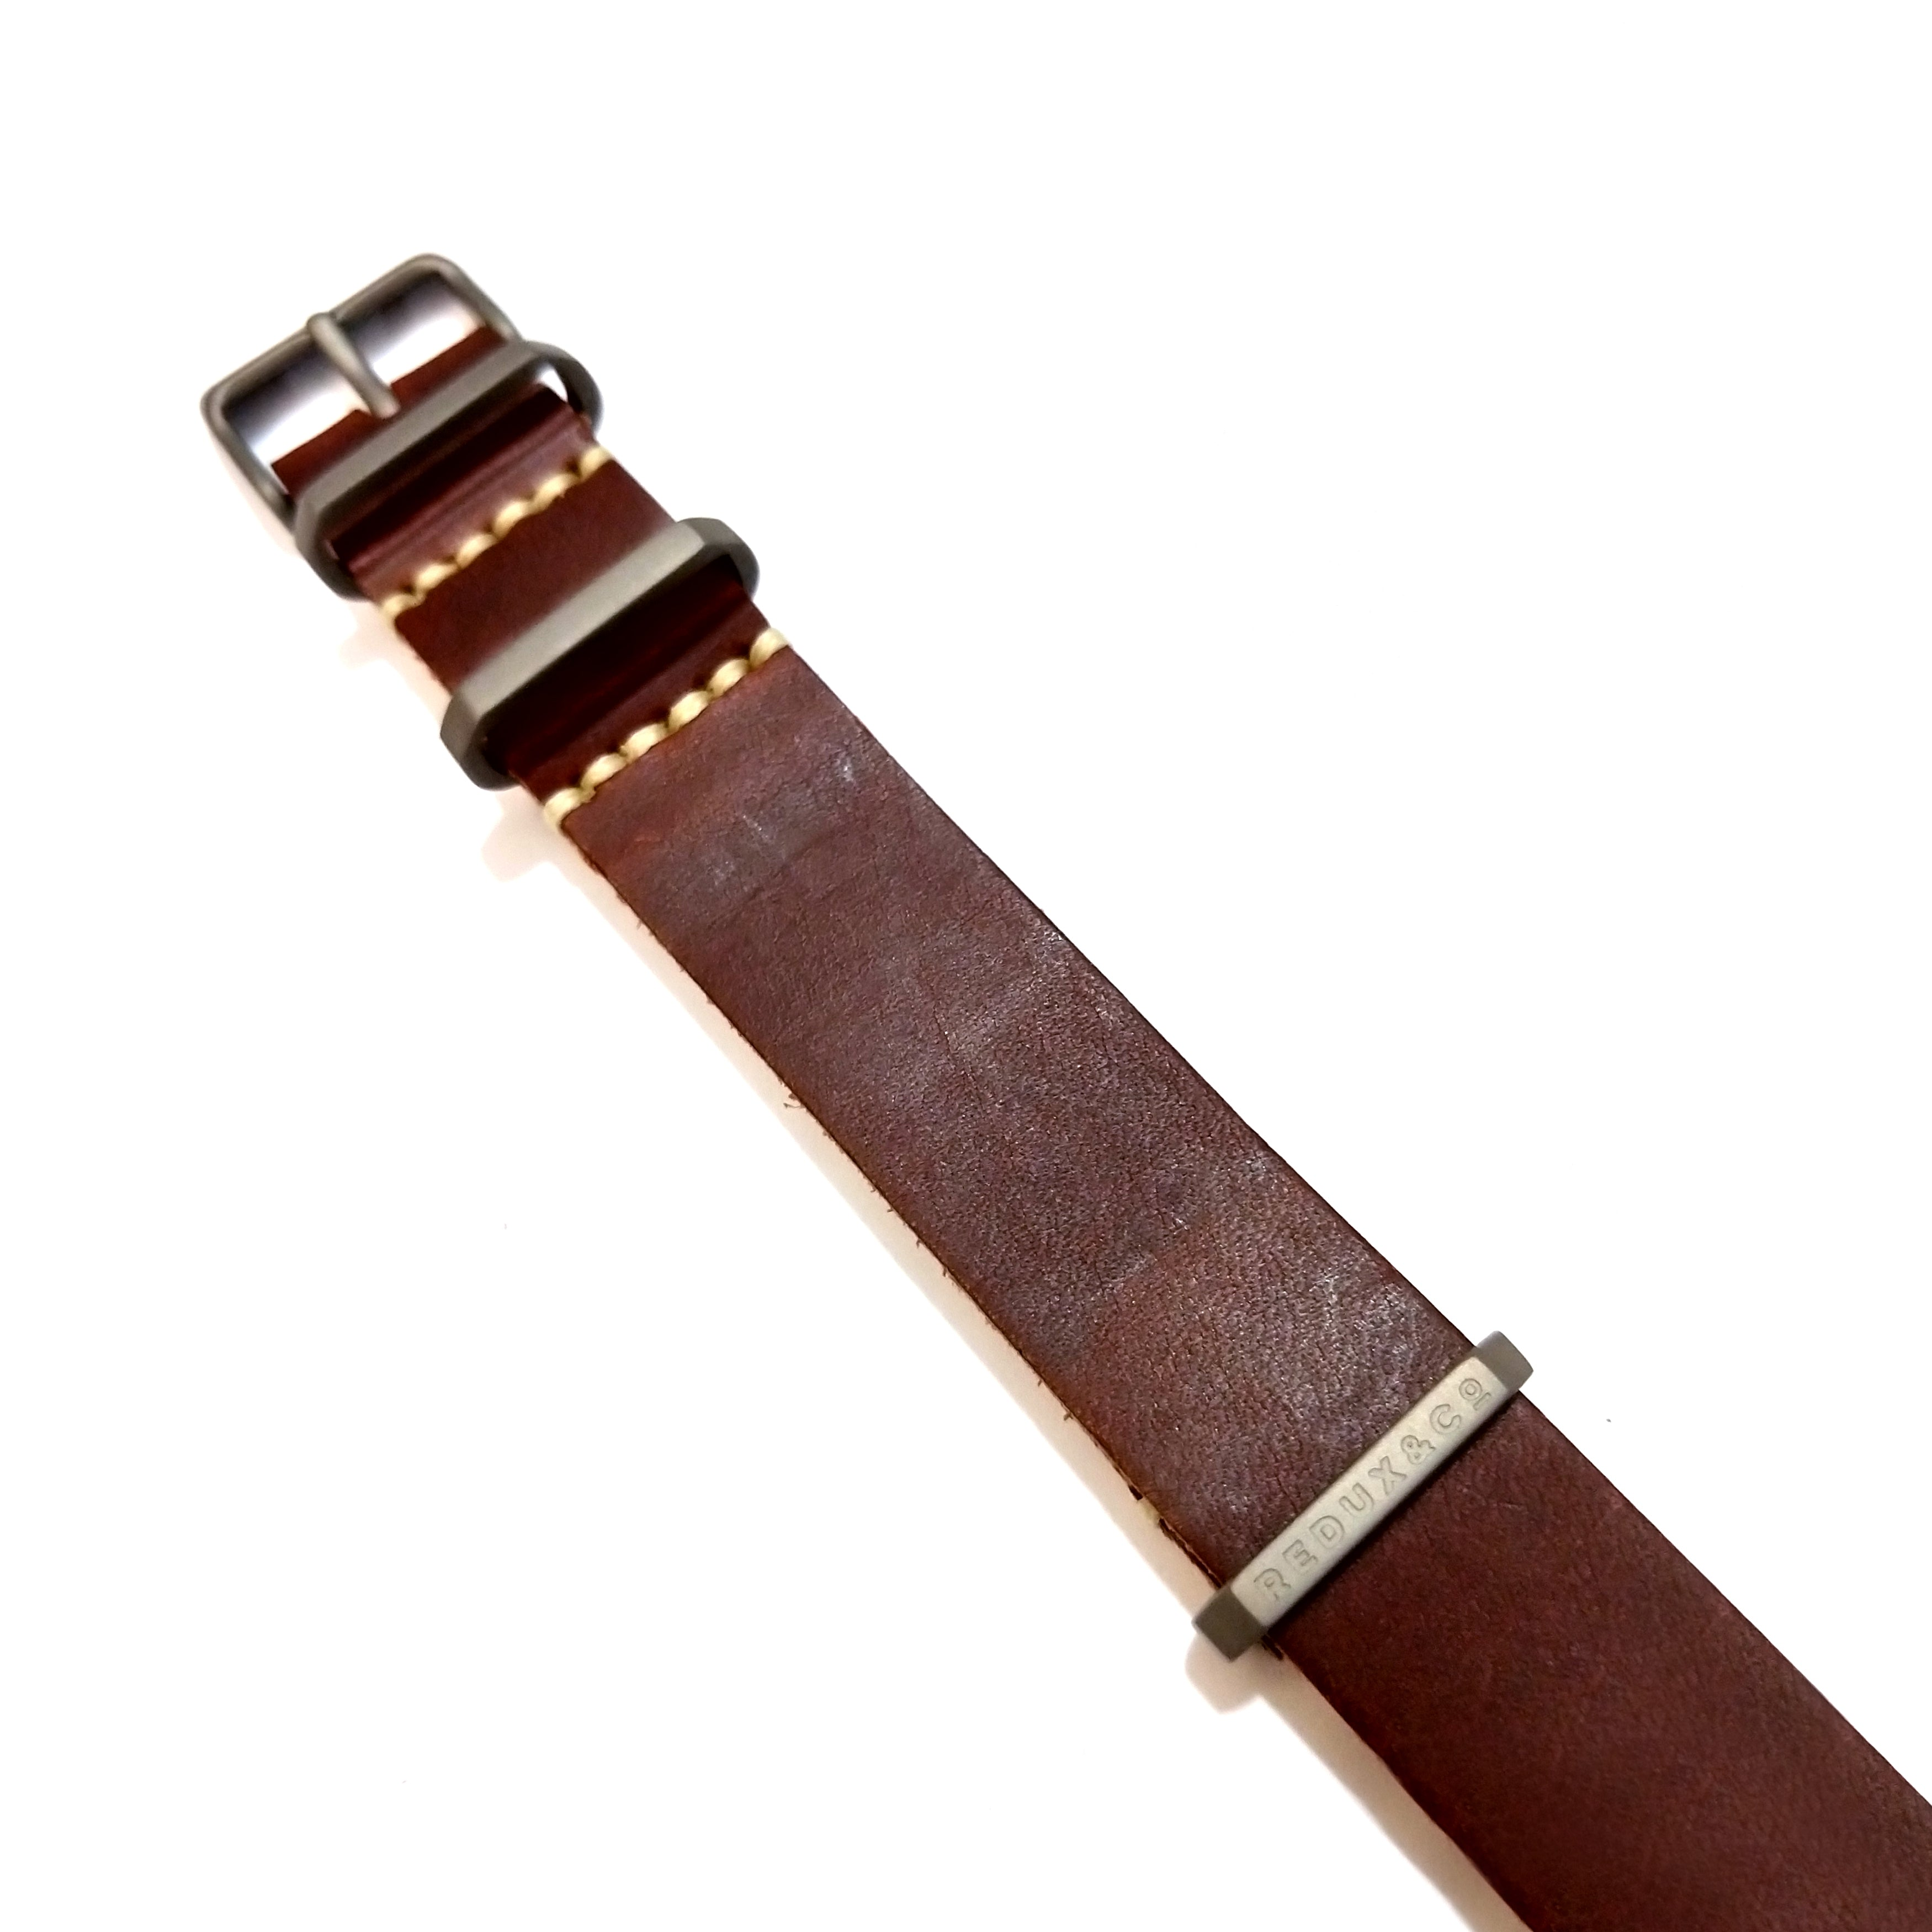 c4b1b016f American Leather G10 / NATO Mil-Strap - Redux & Co.